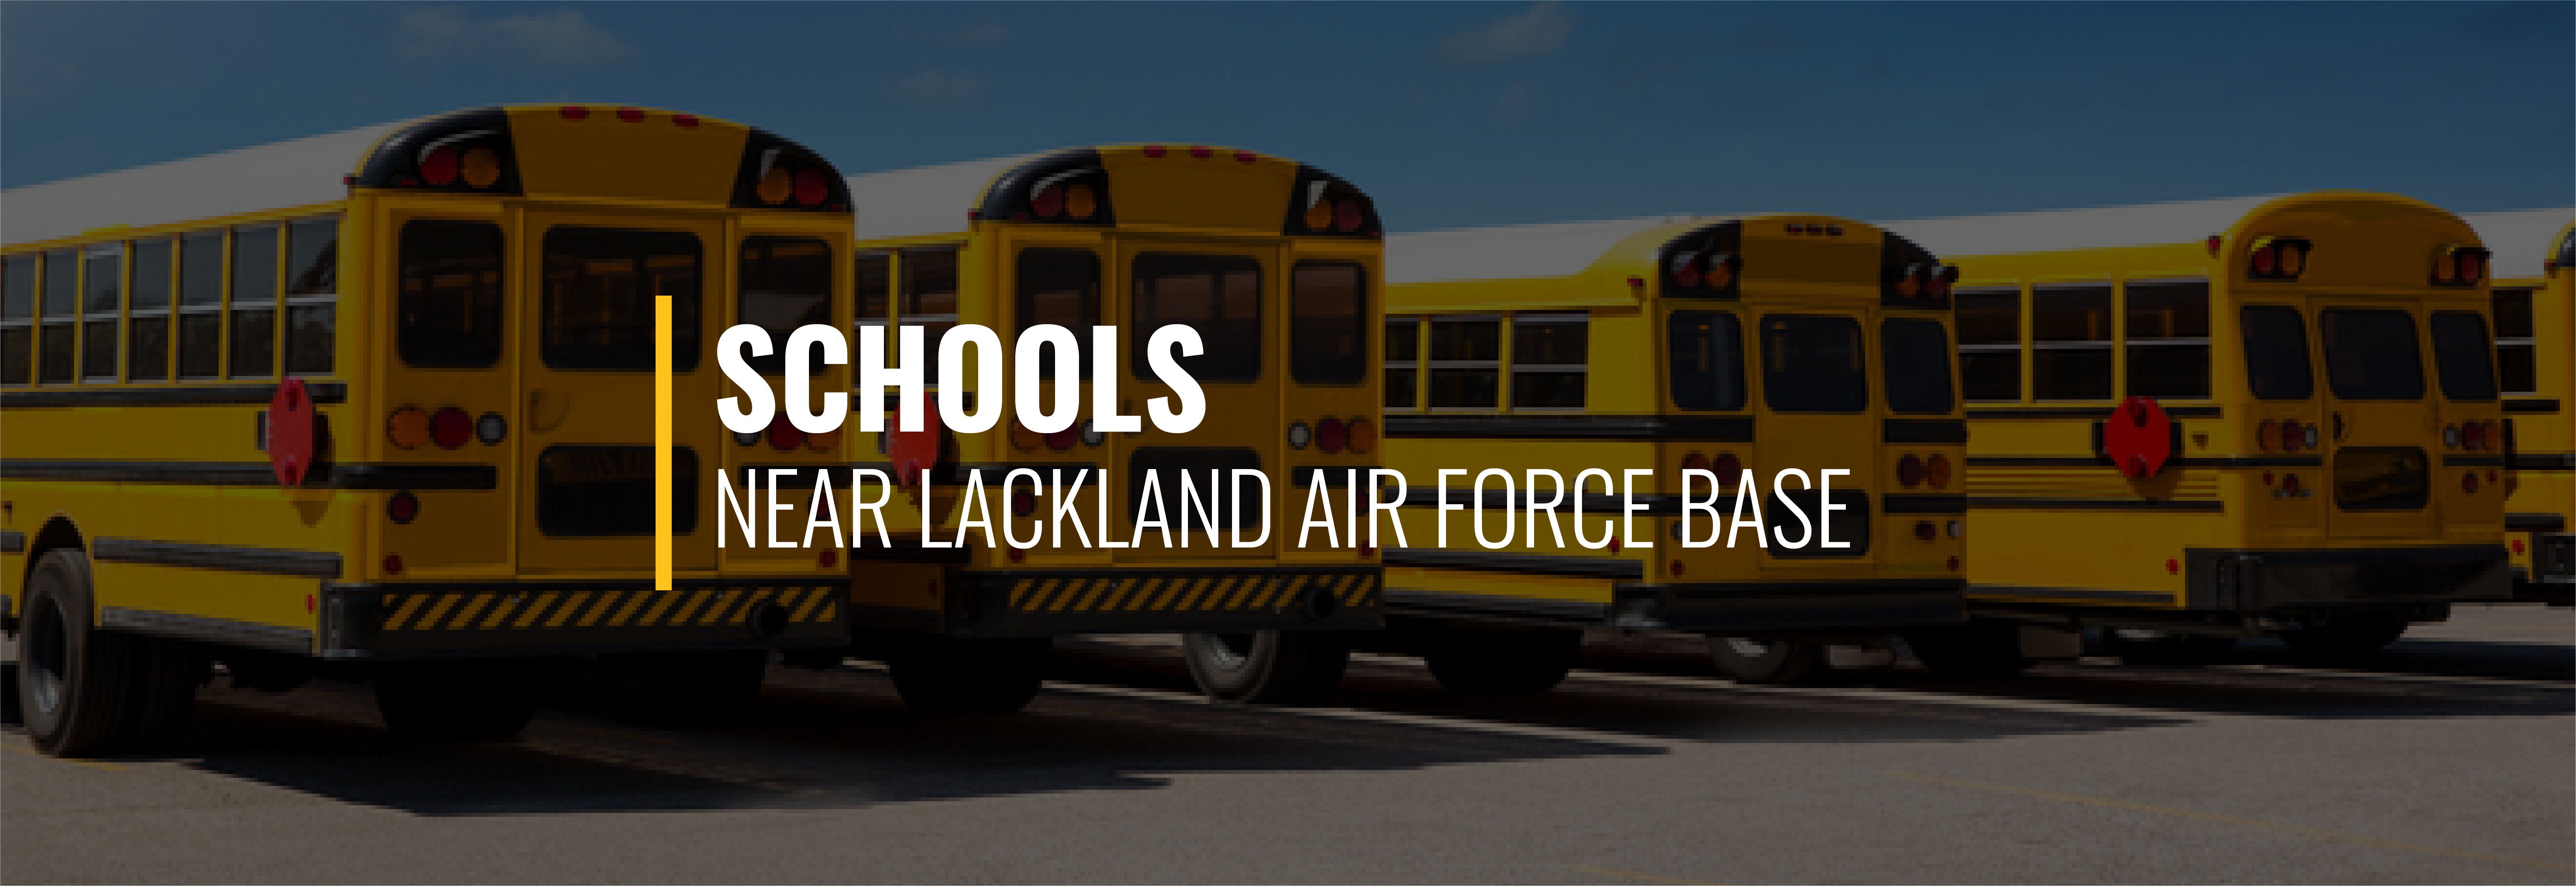 Lackland Air Force Base Schools